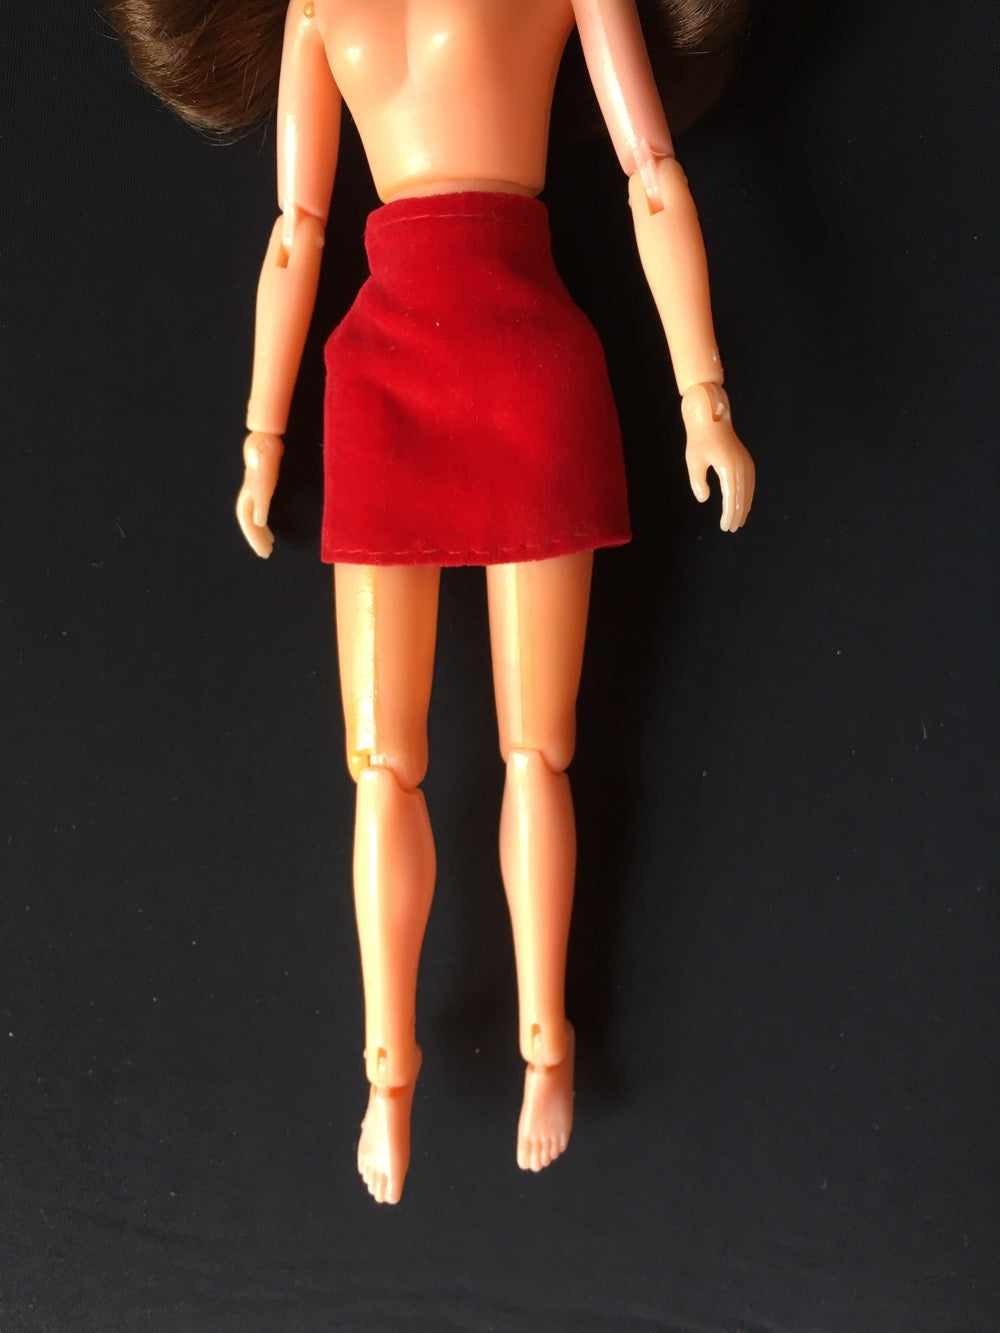 Mary Quant Daisy Mamzelle Fashions red velvet mini skirt fit 9 inch doll